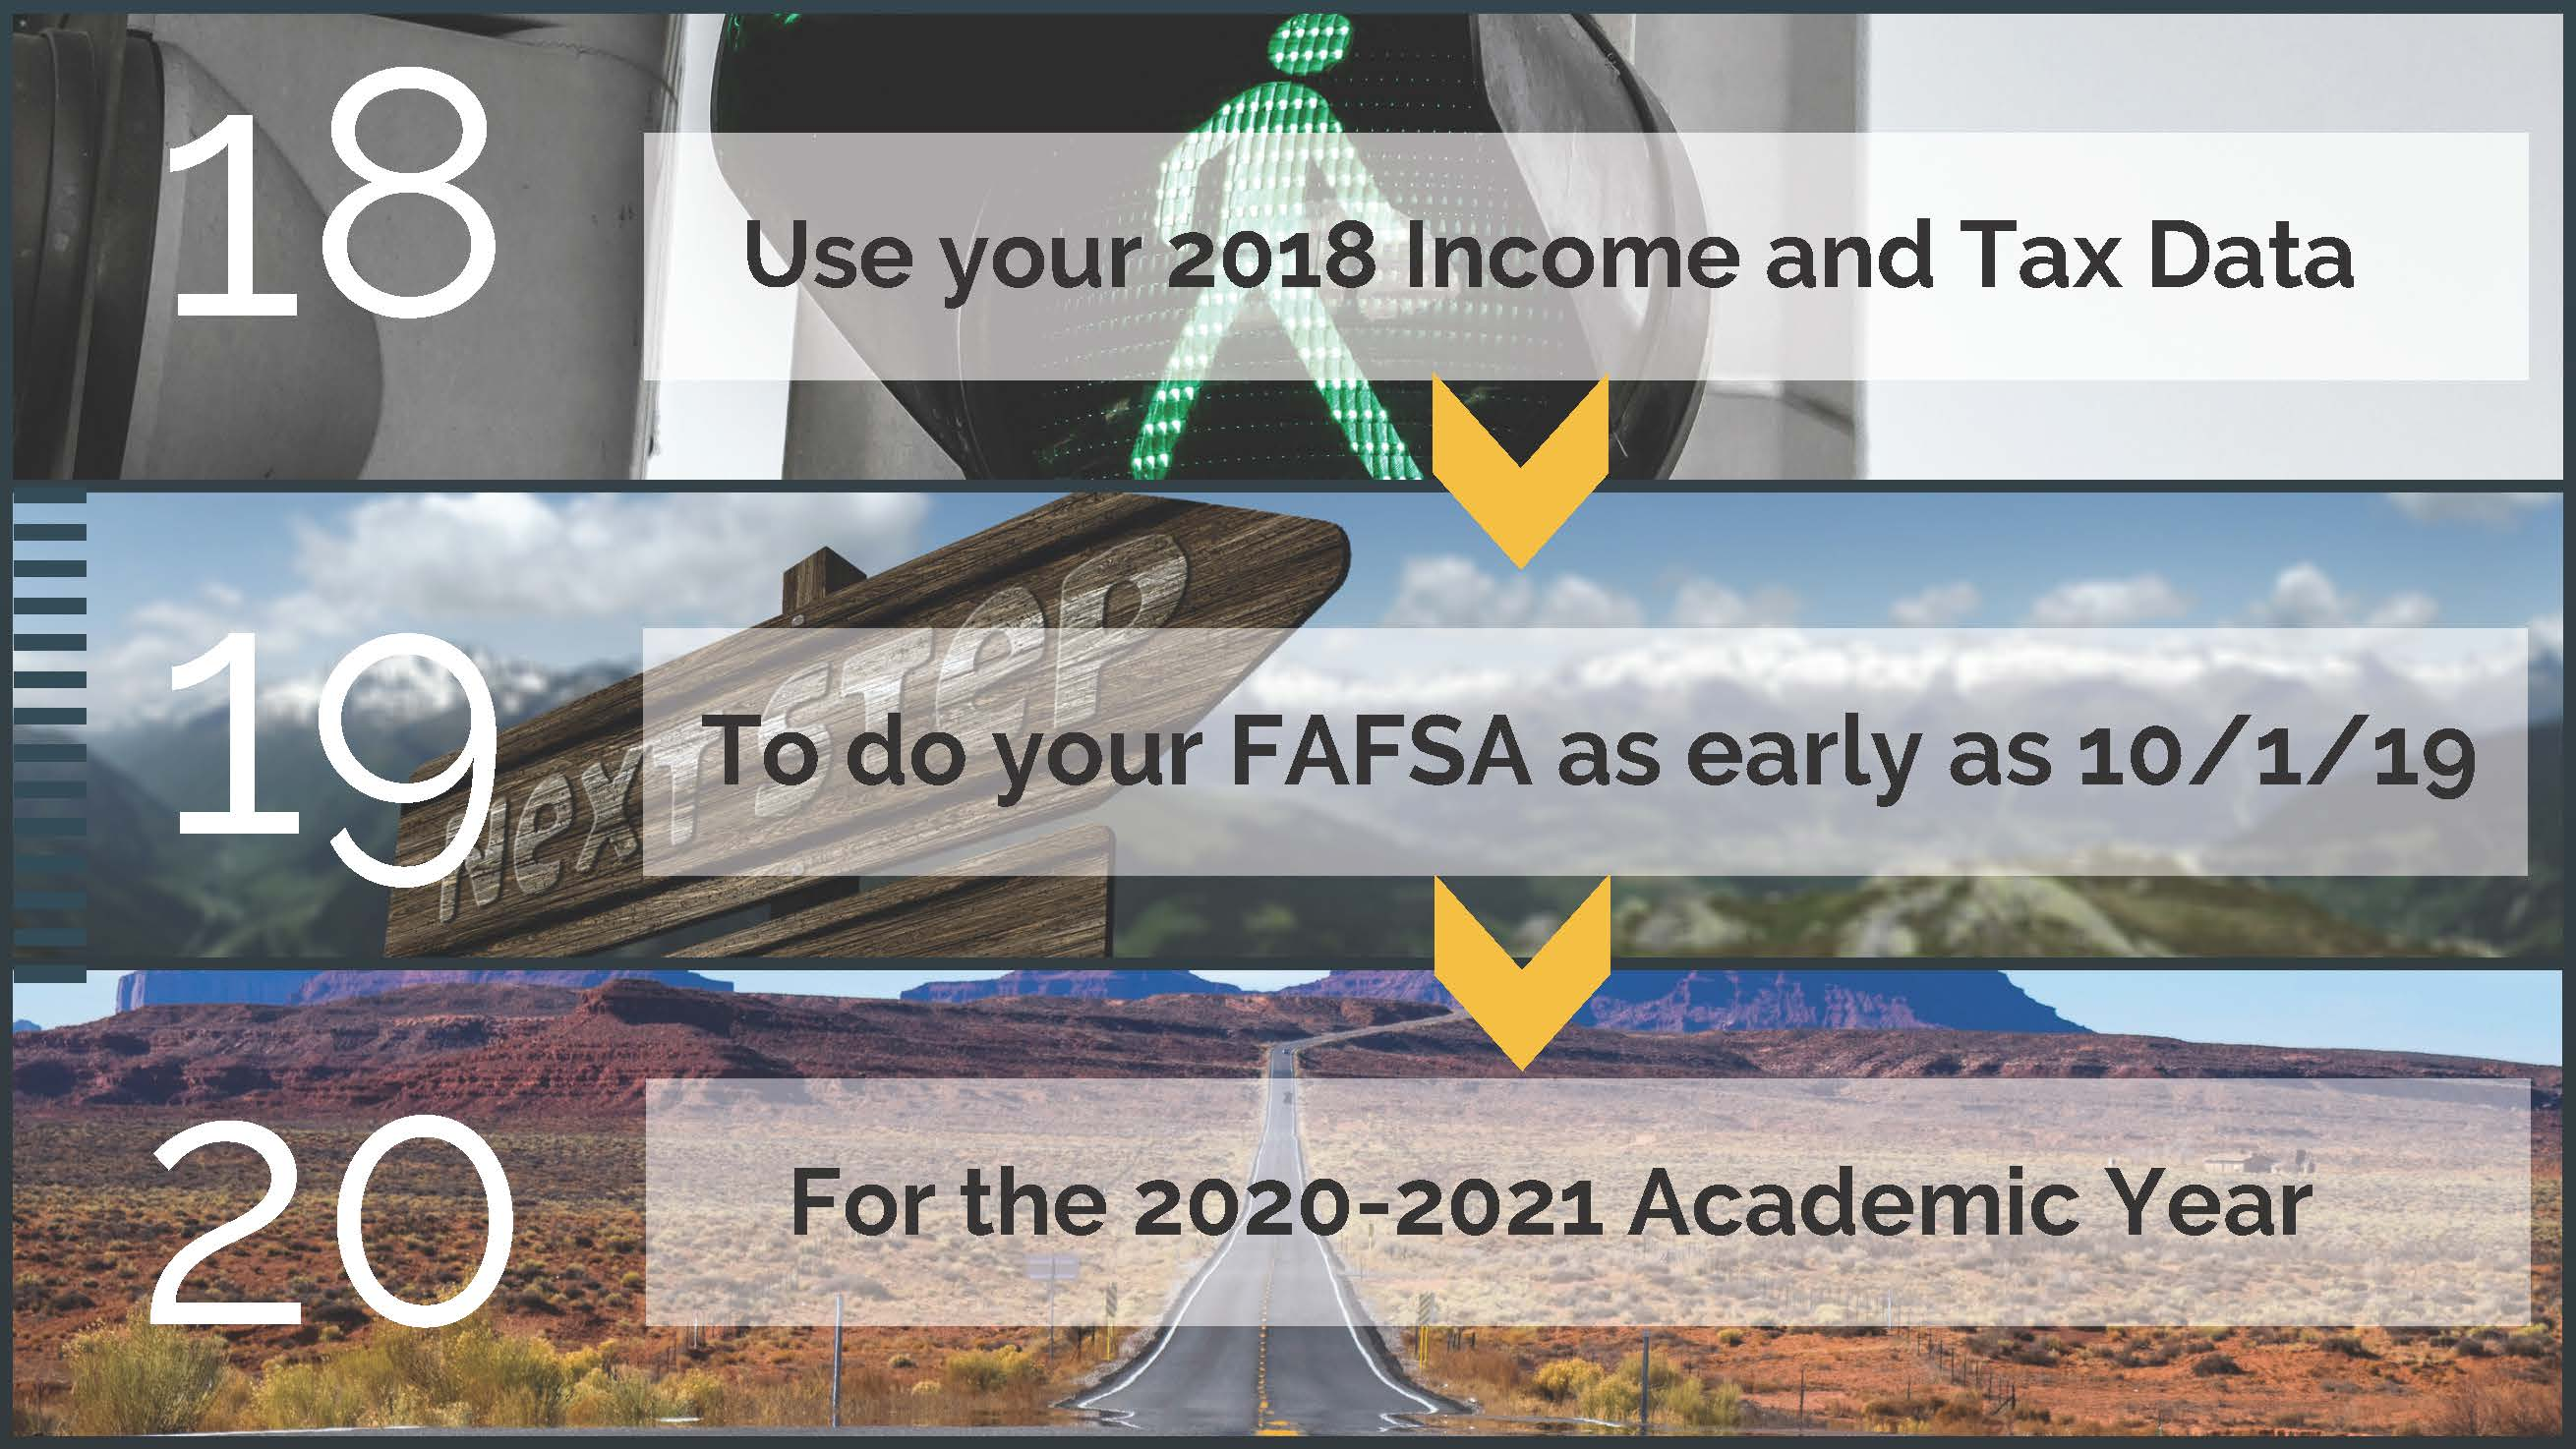 Unm Winter Intersession Courses 2020.Fafsa Information For 2020 2021 Unm Financial Aid Office